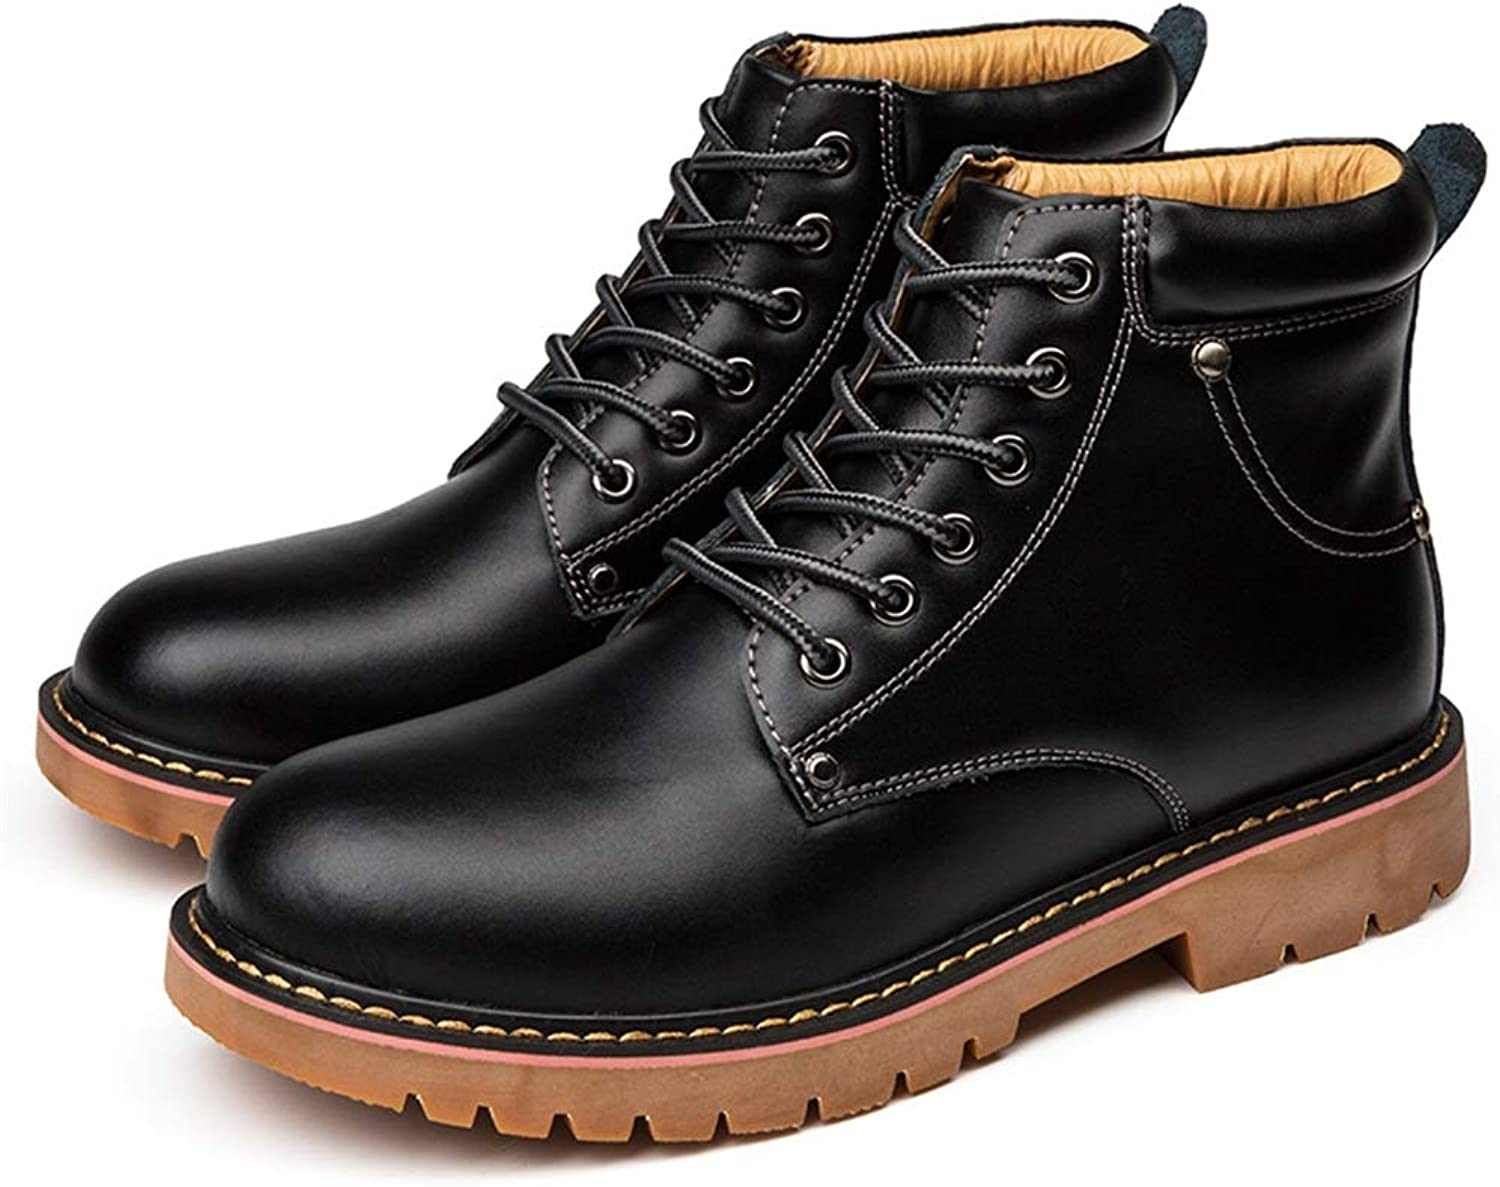 Shufang-shoes , Men's PU Leather High-top Outdoor Outsole Leisure boots Fashion Boots Casual (color   Black, Size   8.5 UK)